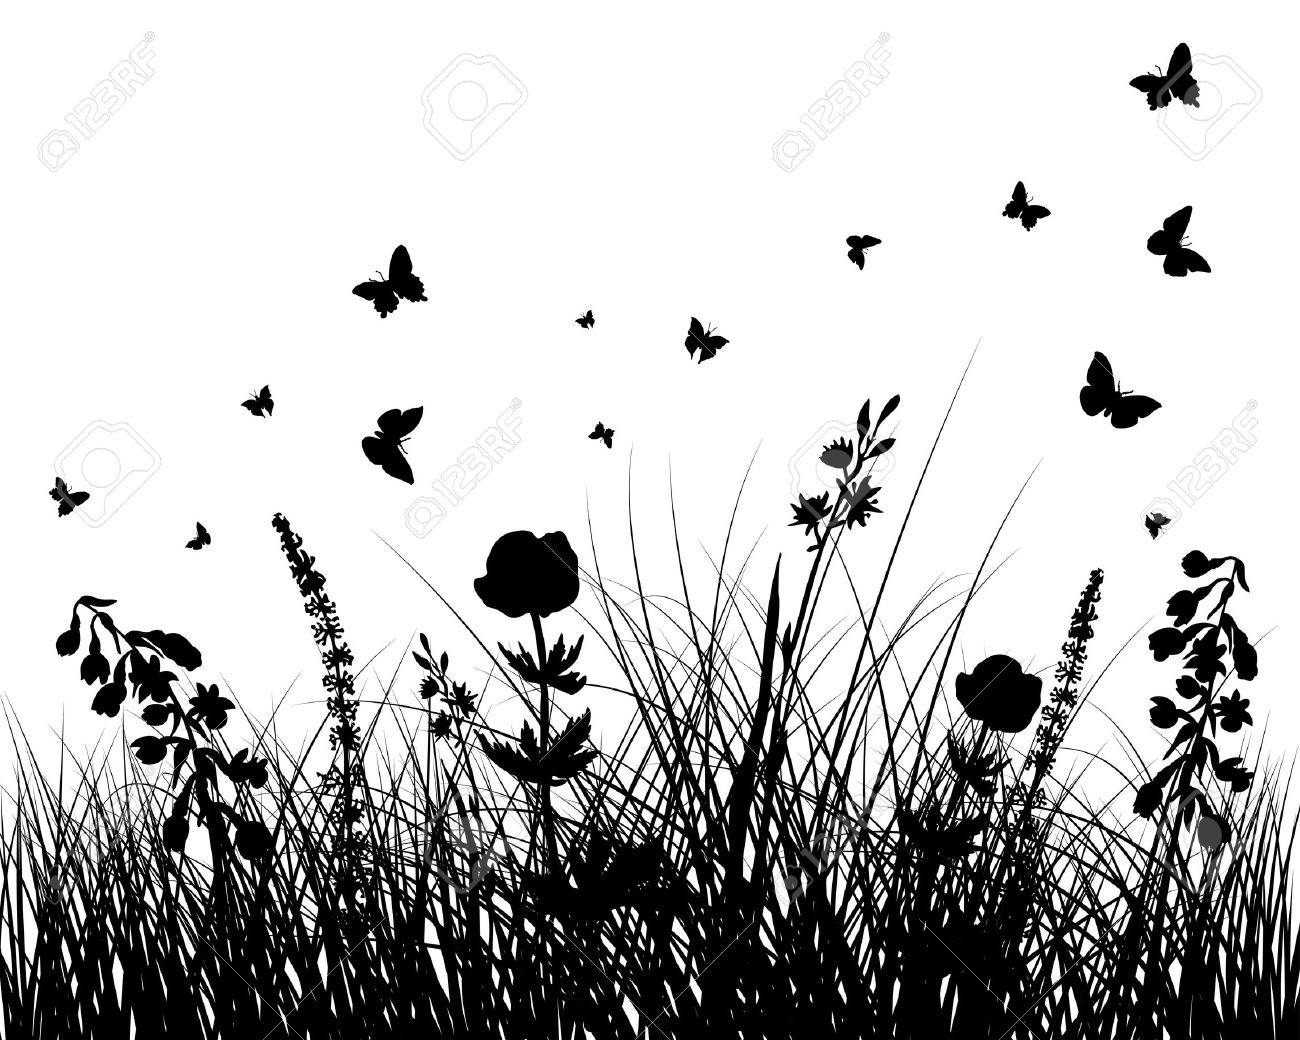 grass silhouettes background. All objects are separated. - 8656463